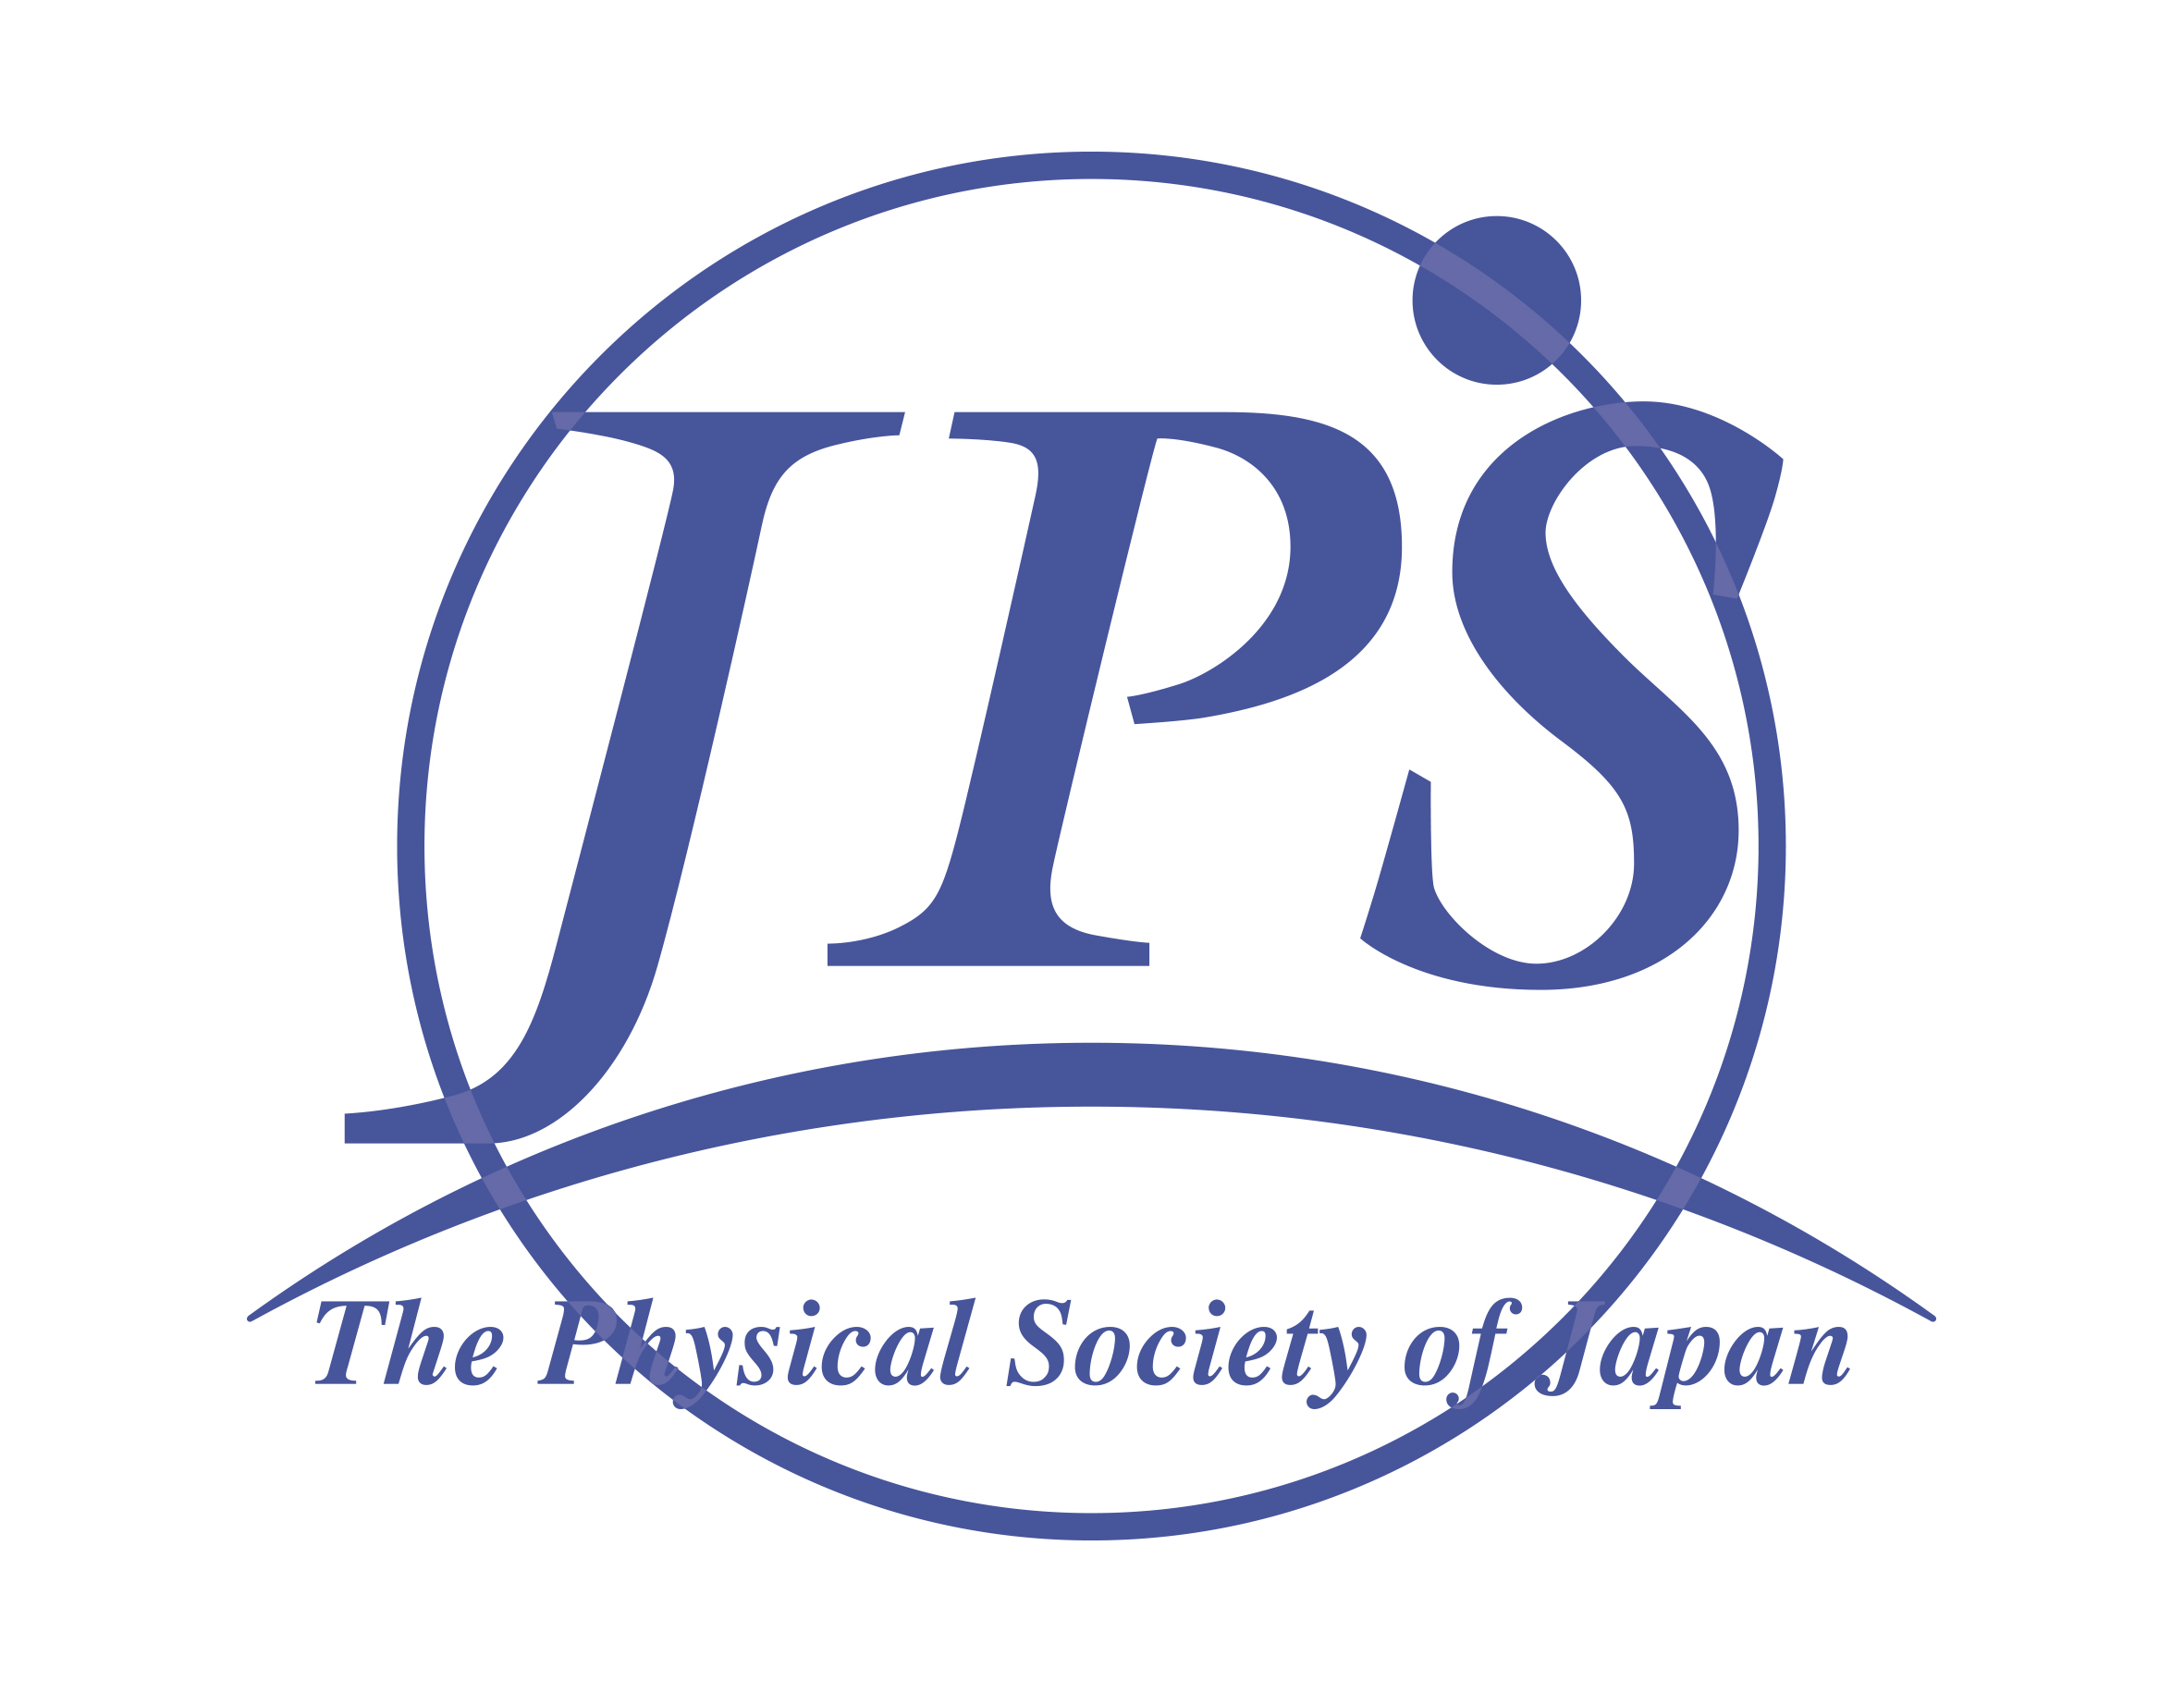 JPS PHYSICAL SOCIETY OF JAPAN logo